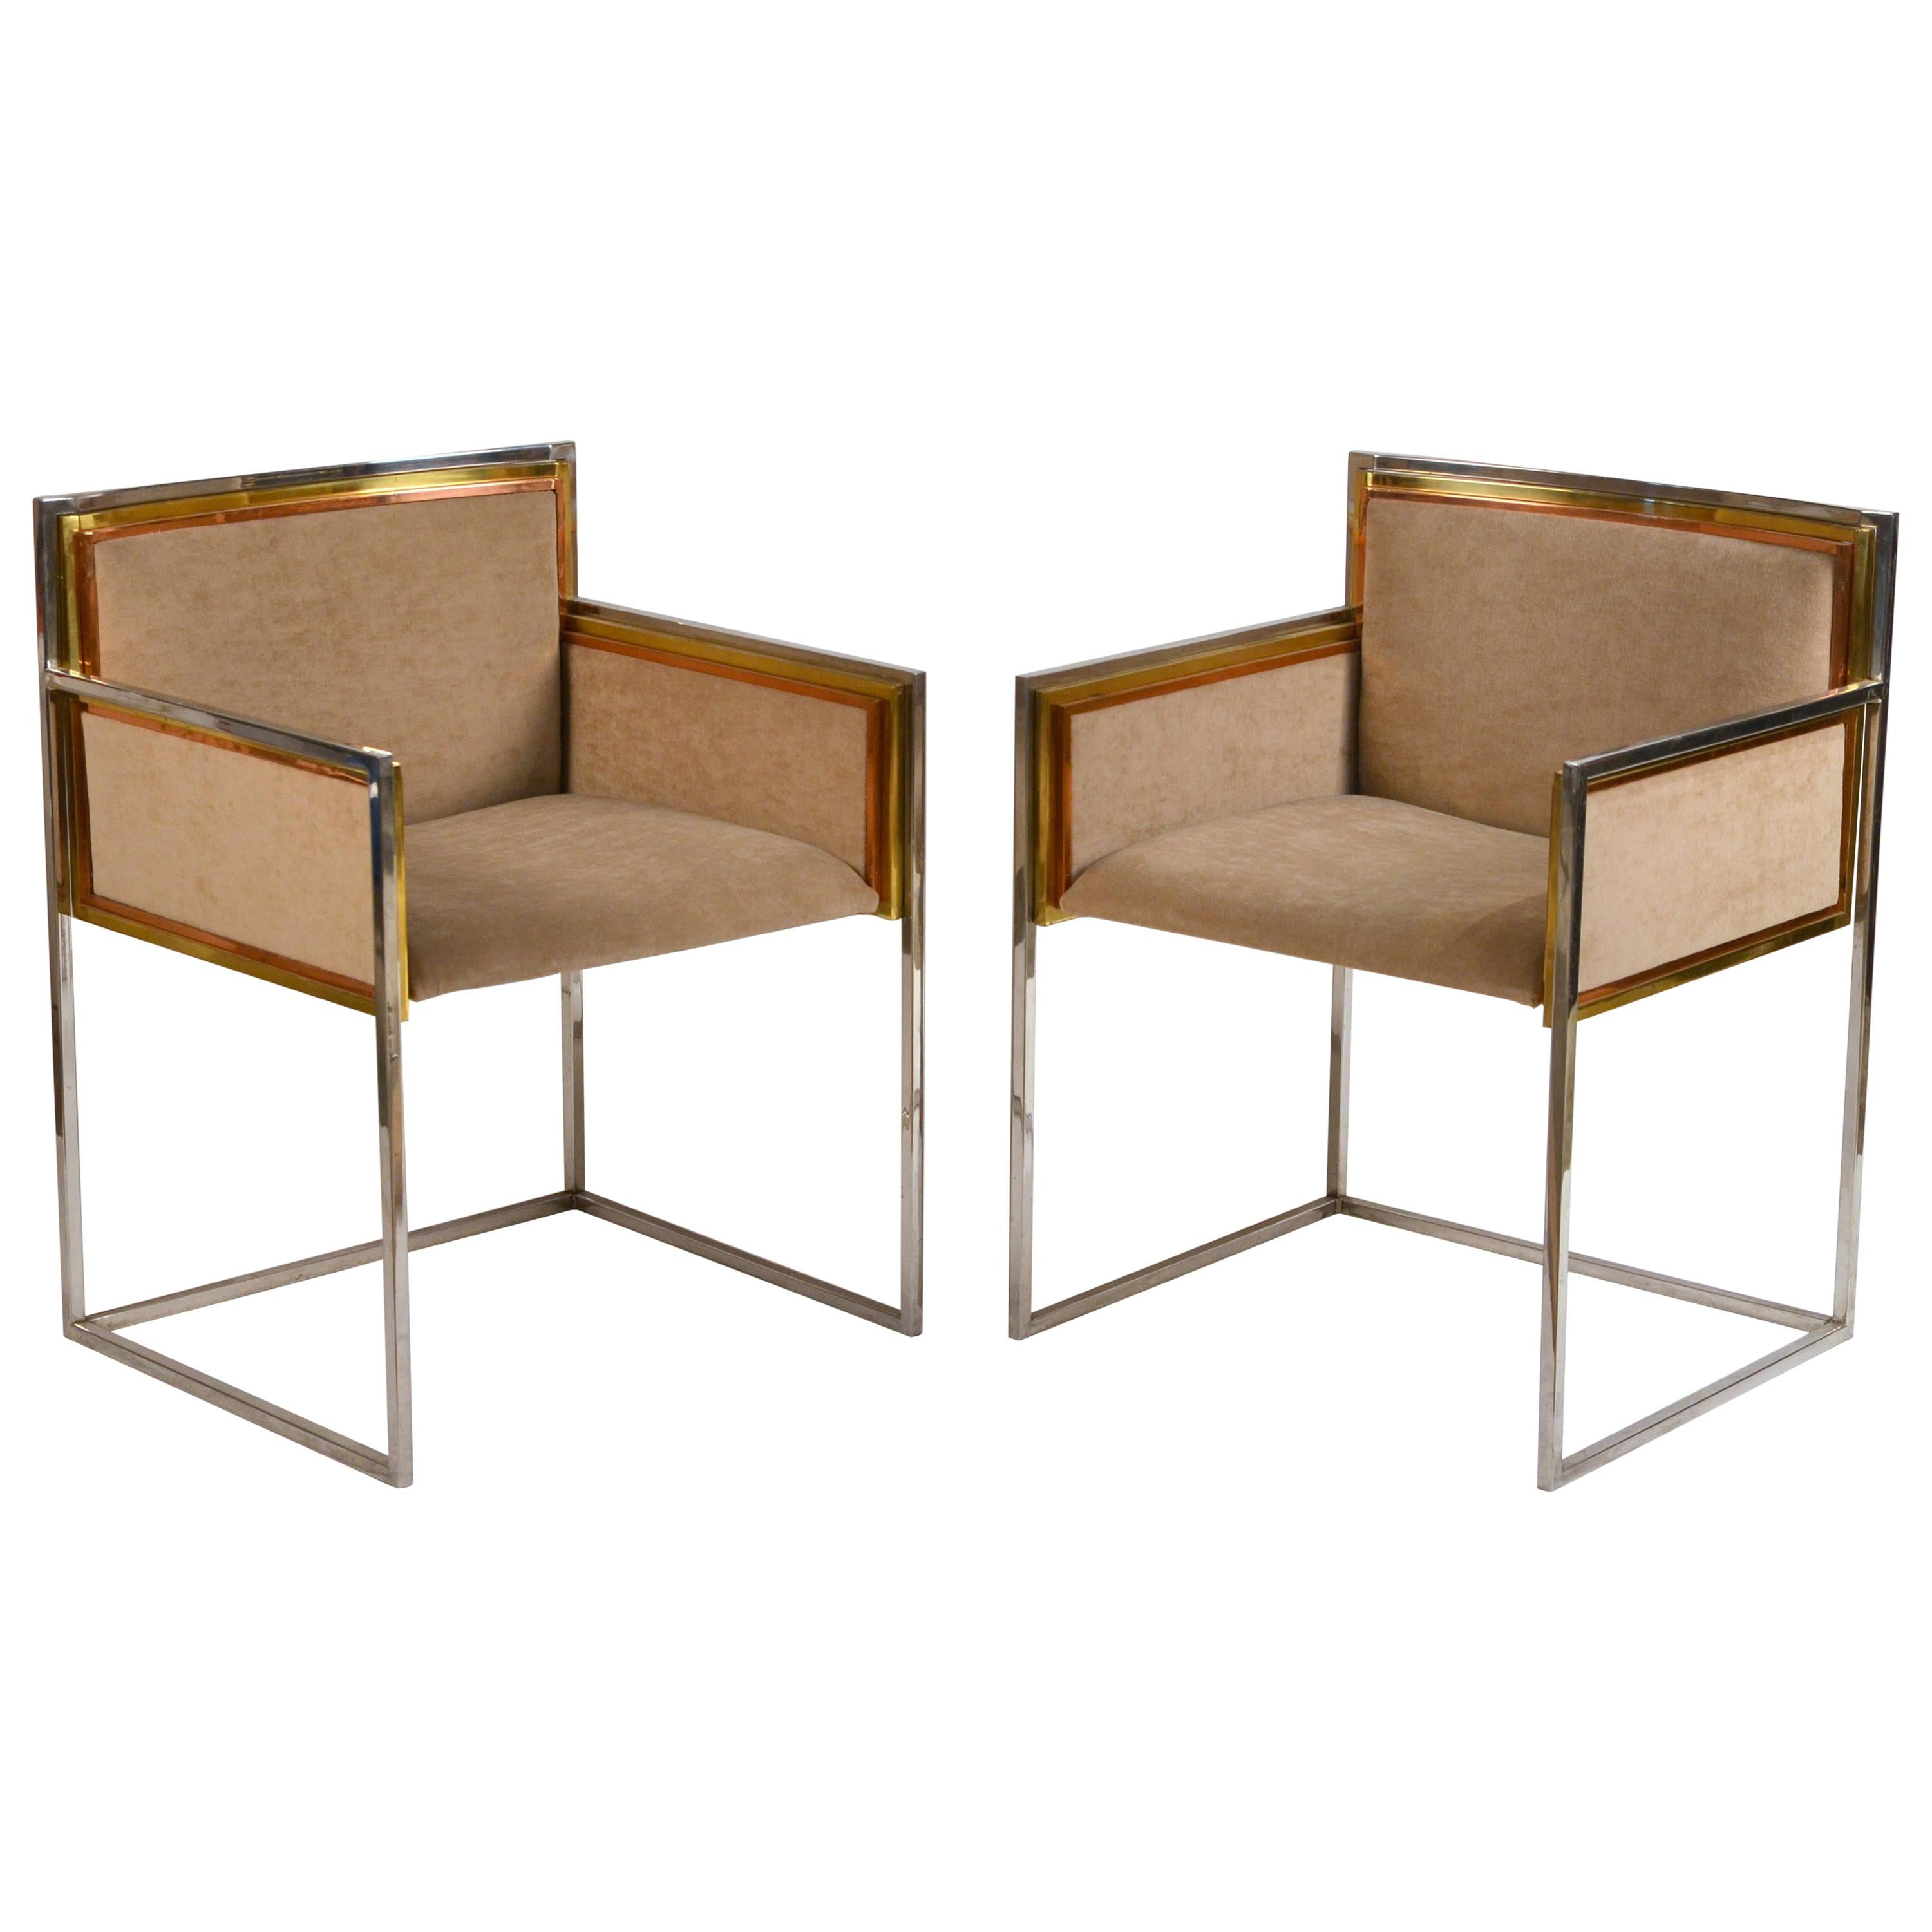 Exceptional Pair of Armchairs by Alain Delon for Maison Jansen